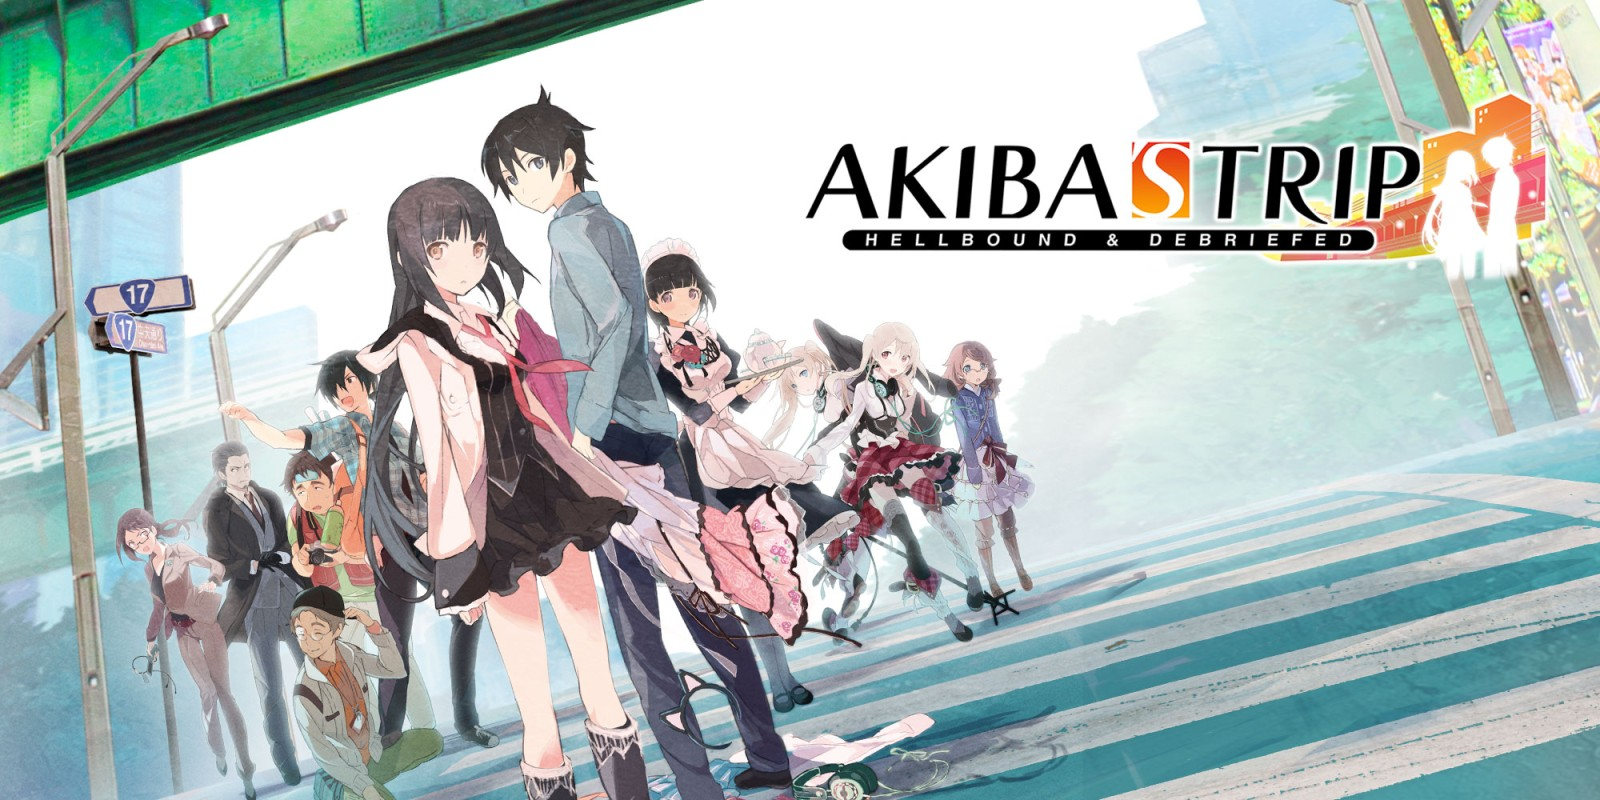 Read more about the article Akiba's Trip: Hellbound & Debriefed